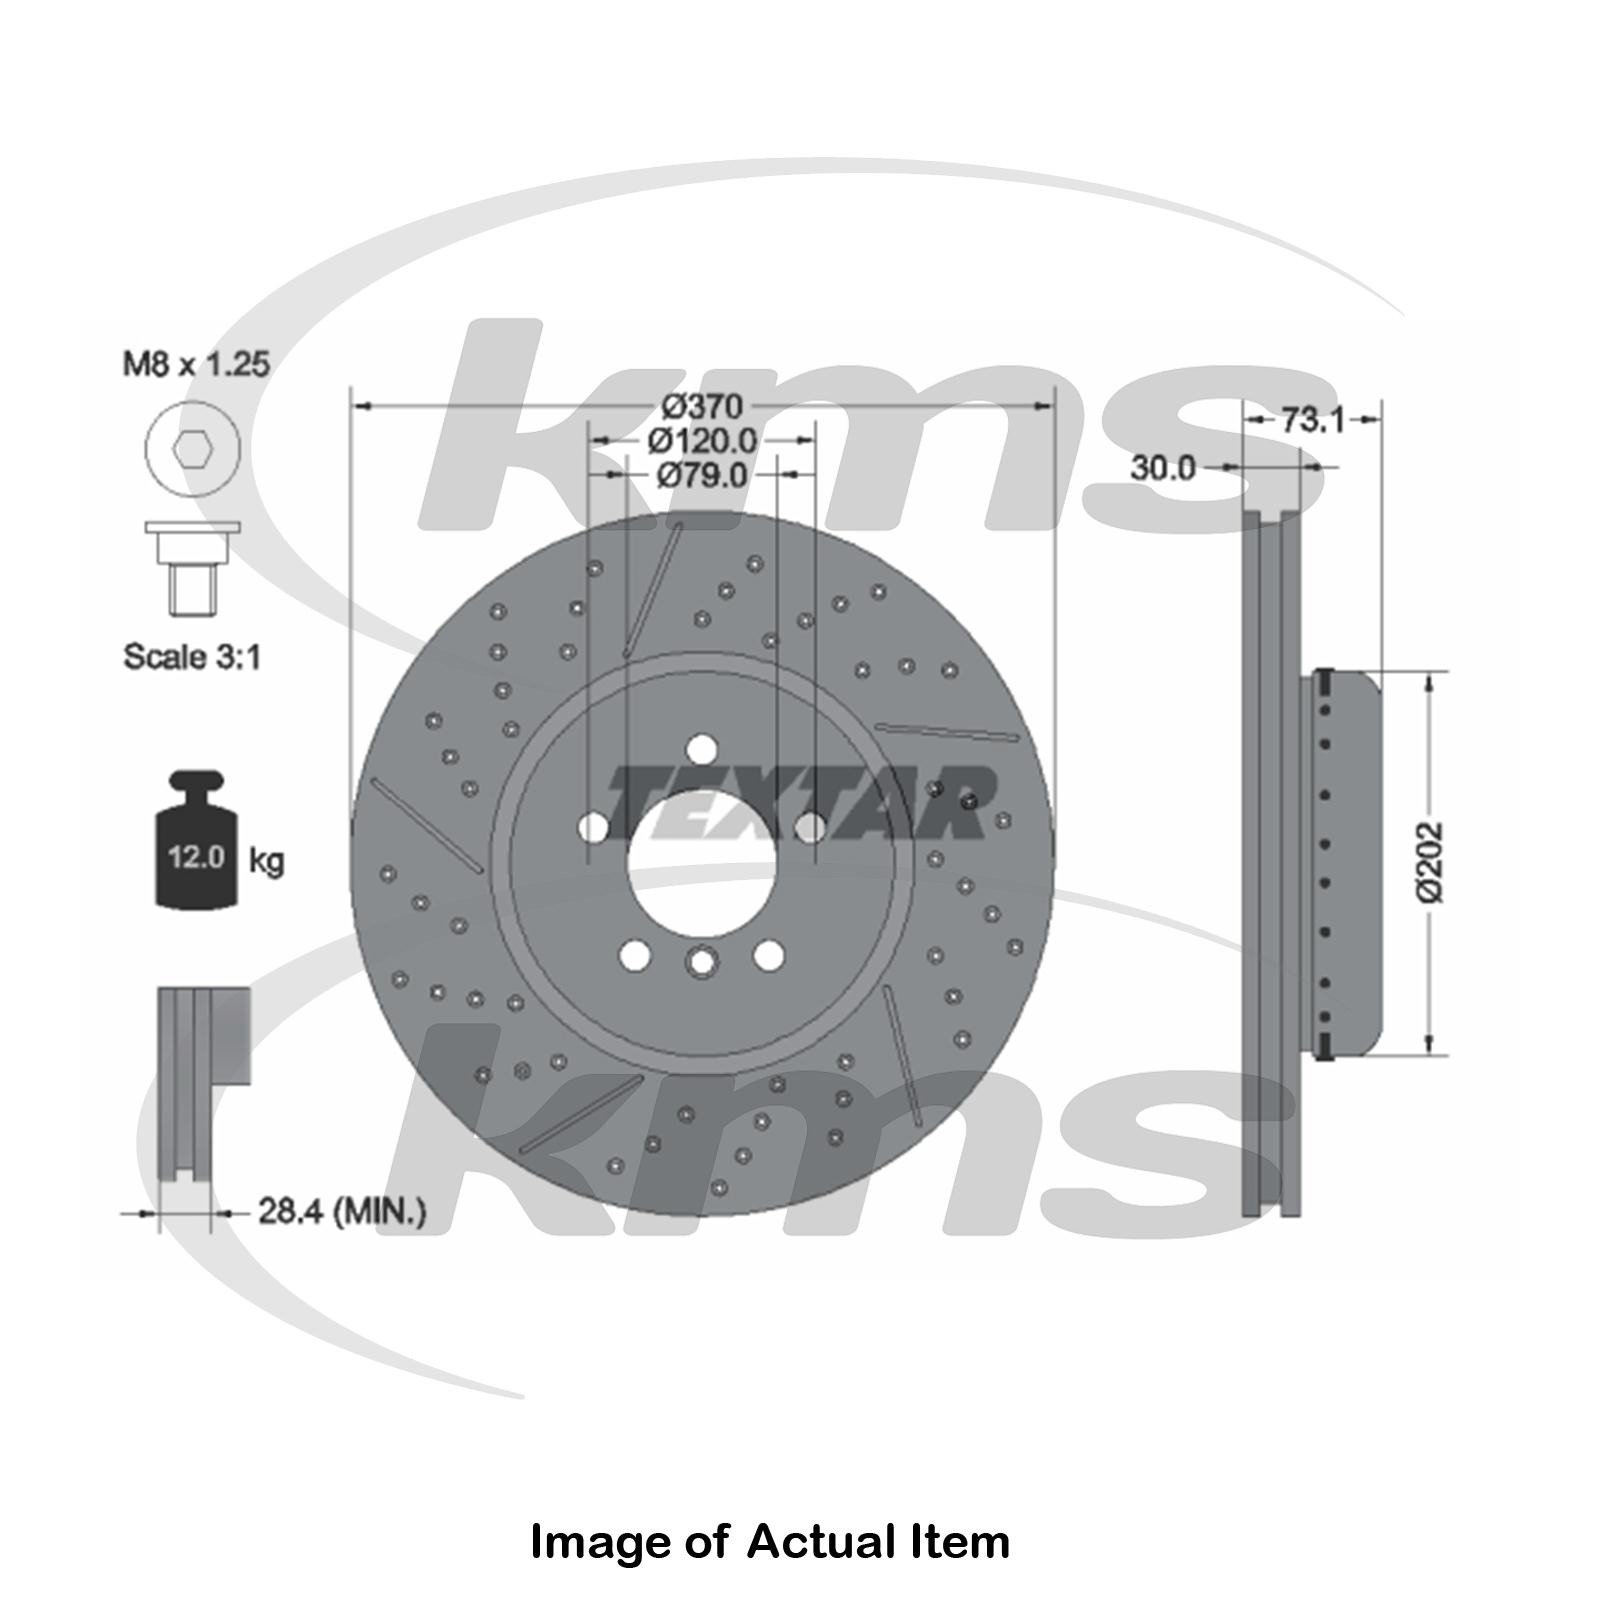 Disc Brake assembly Diagram New Genuine Textar Brake Disc top German Quality Of Disc Brake assembly Diagram